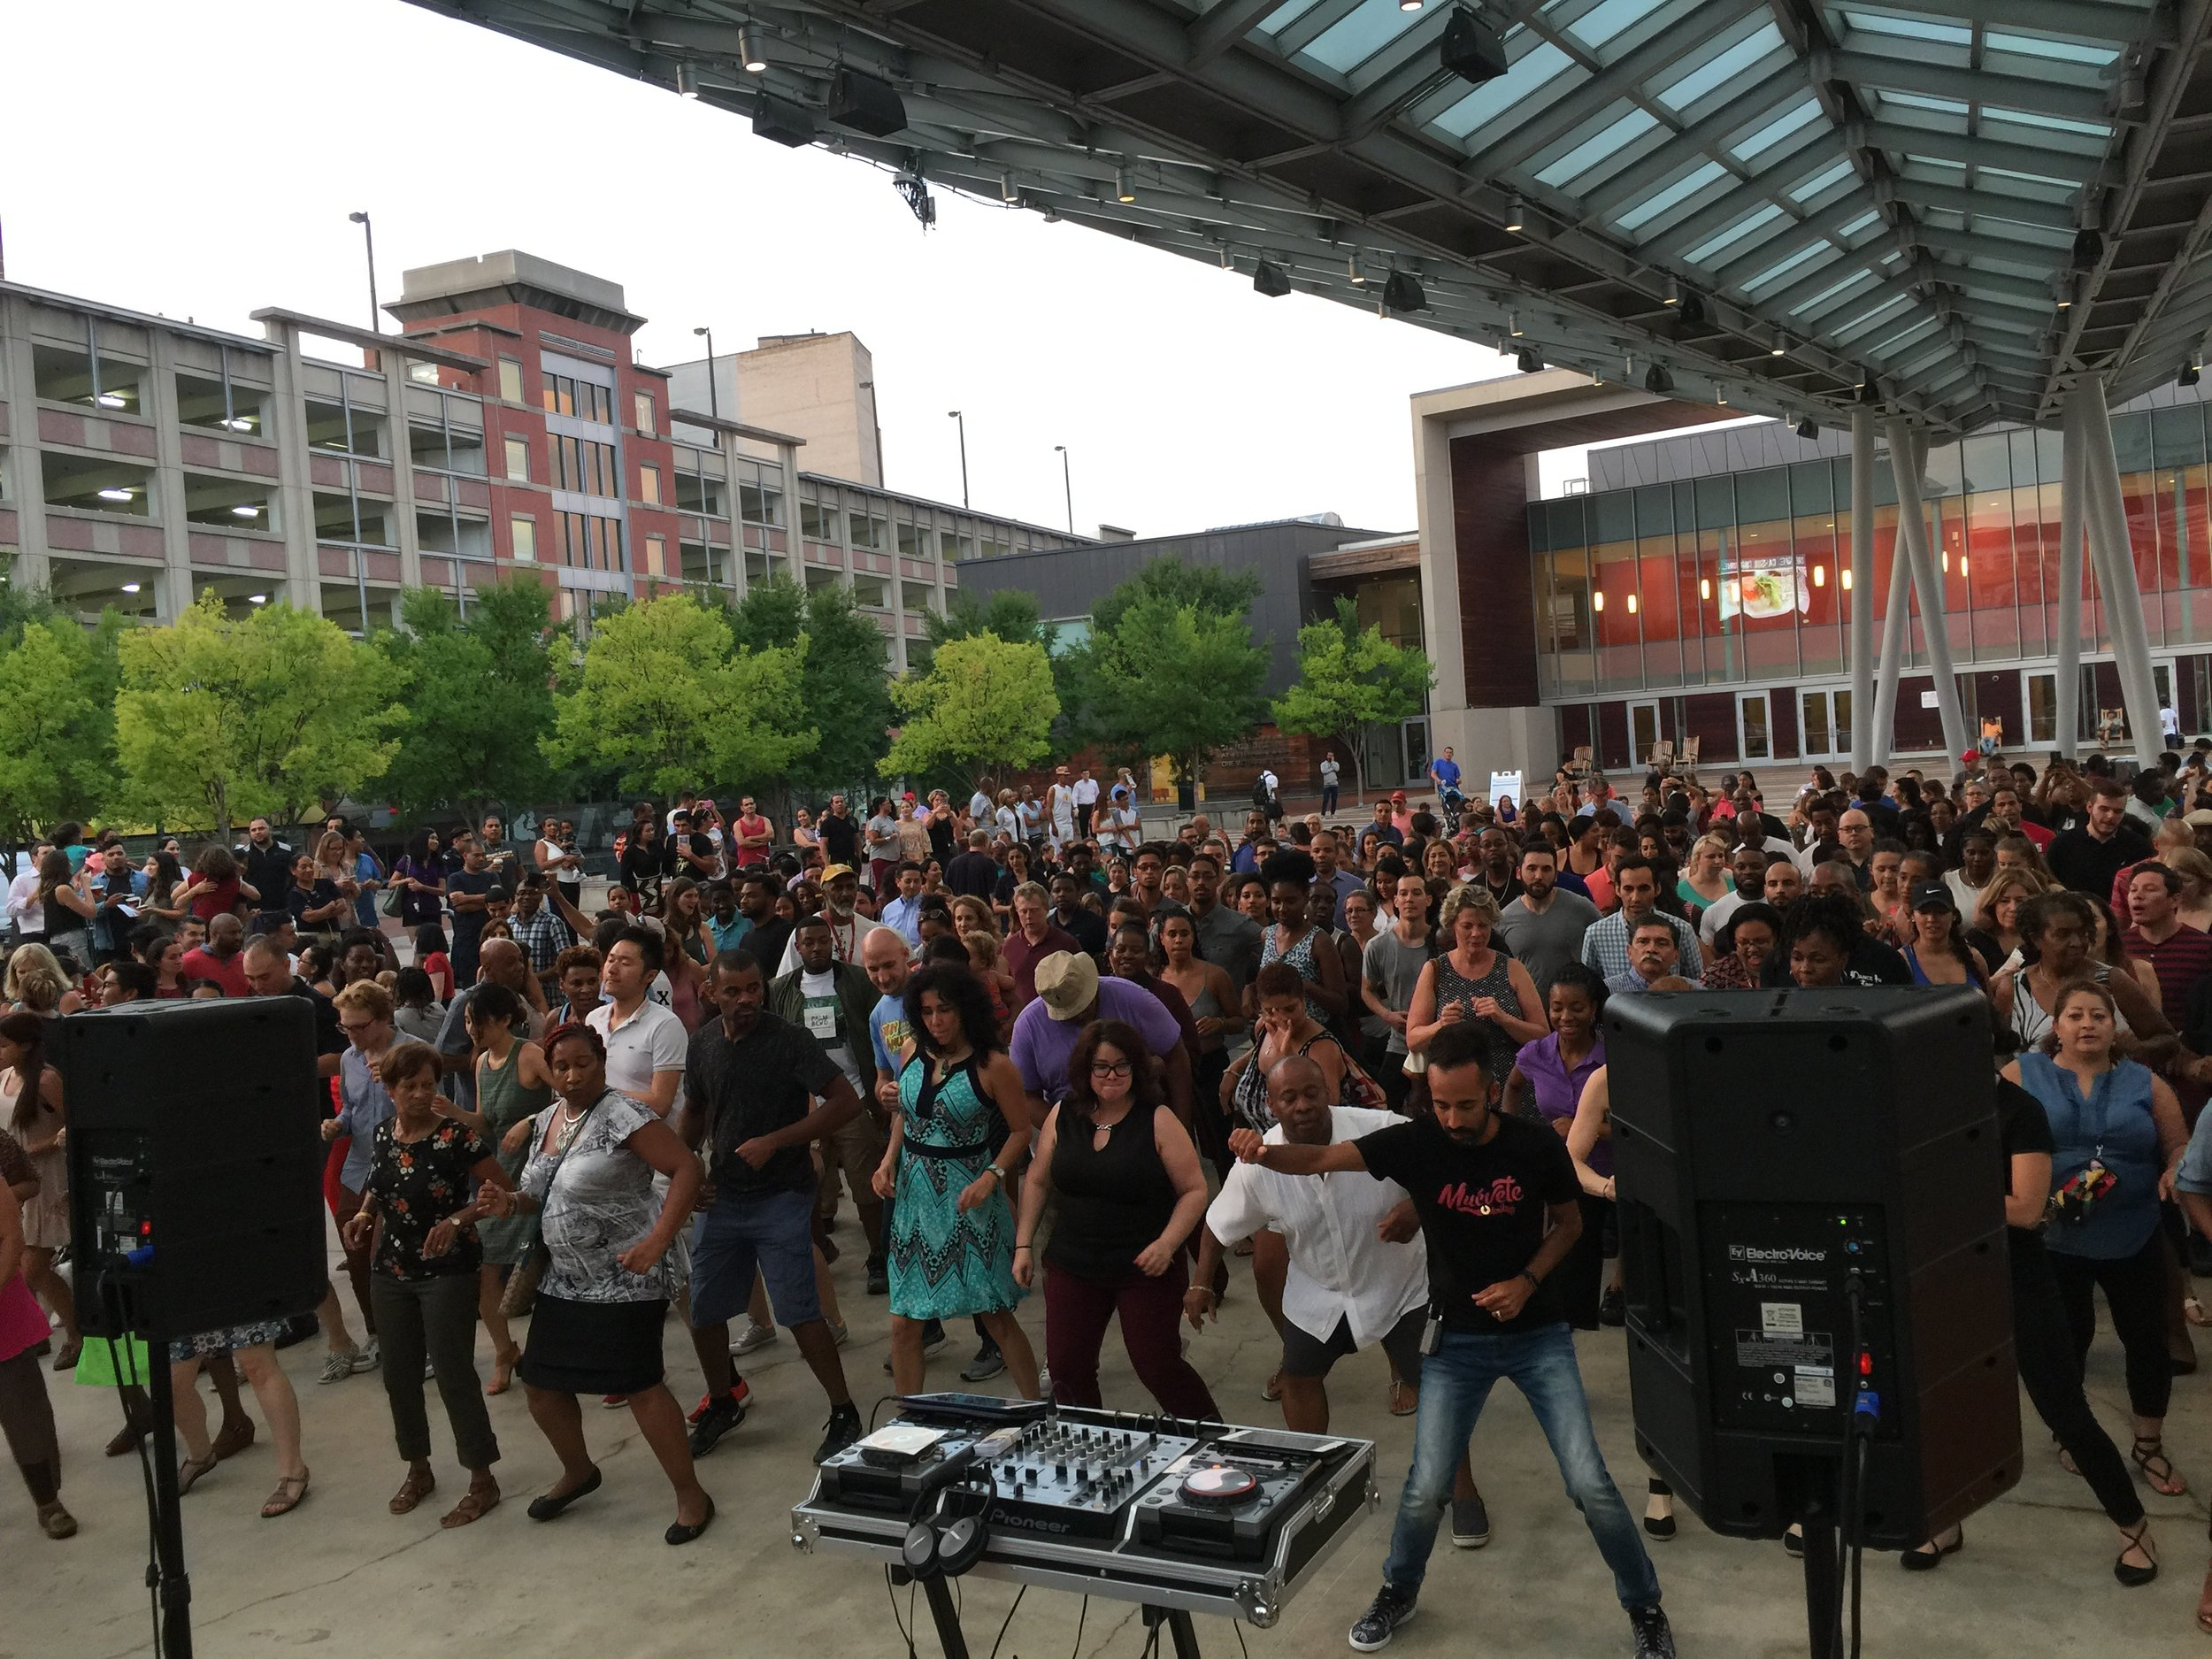 Latin Night at Silver Spring's Veterans Plaza with DanceInTime and Victor Maysonet.